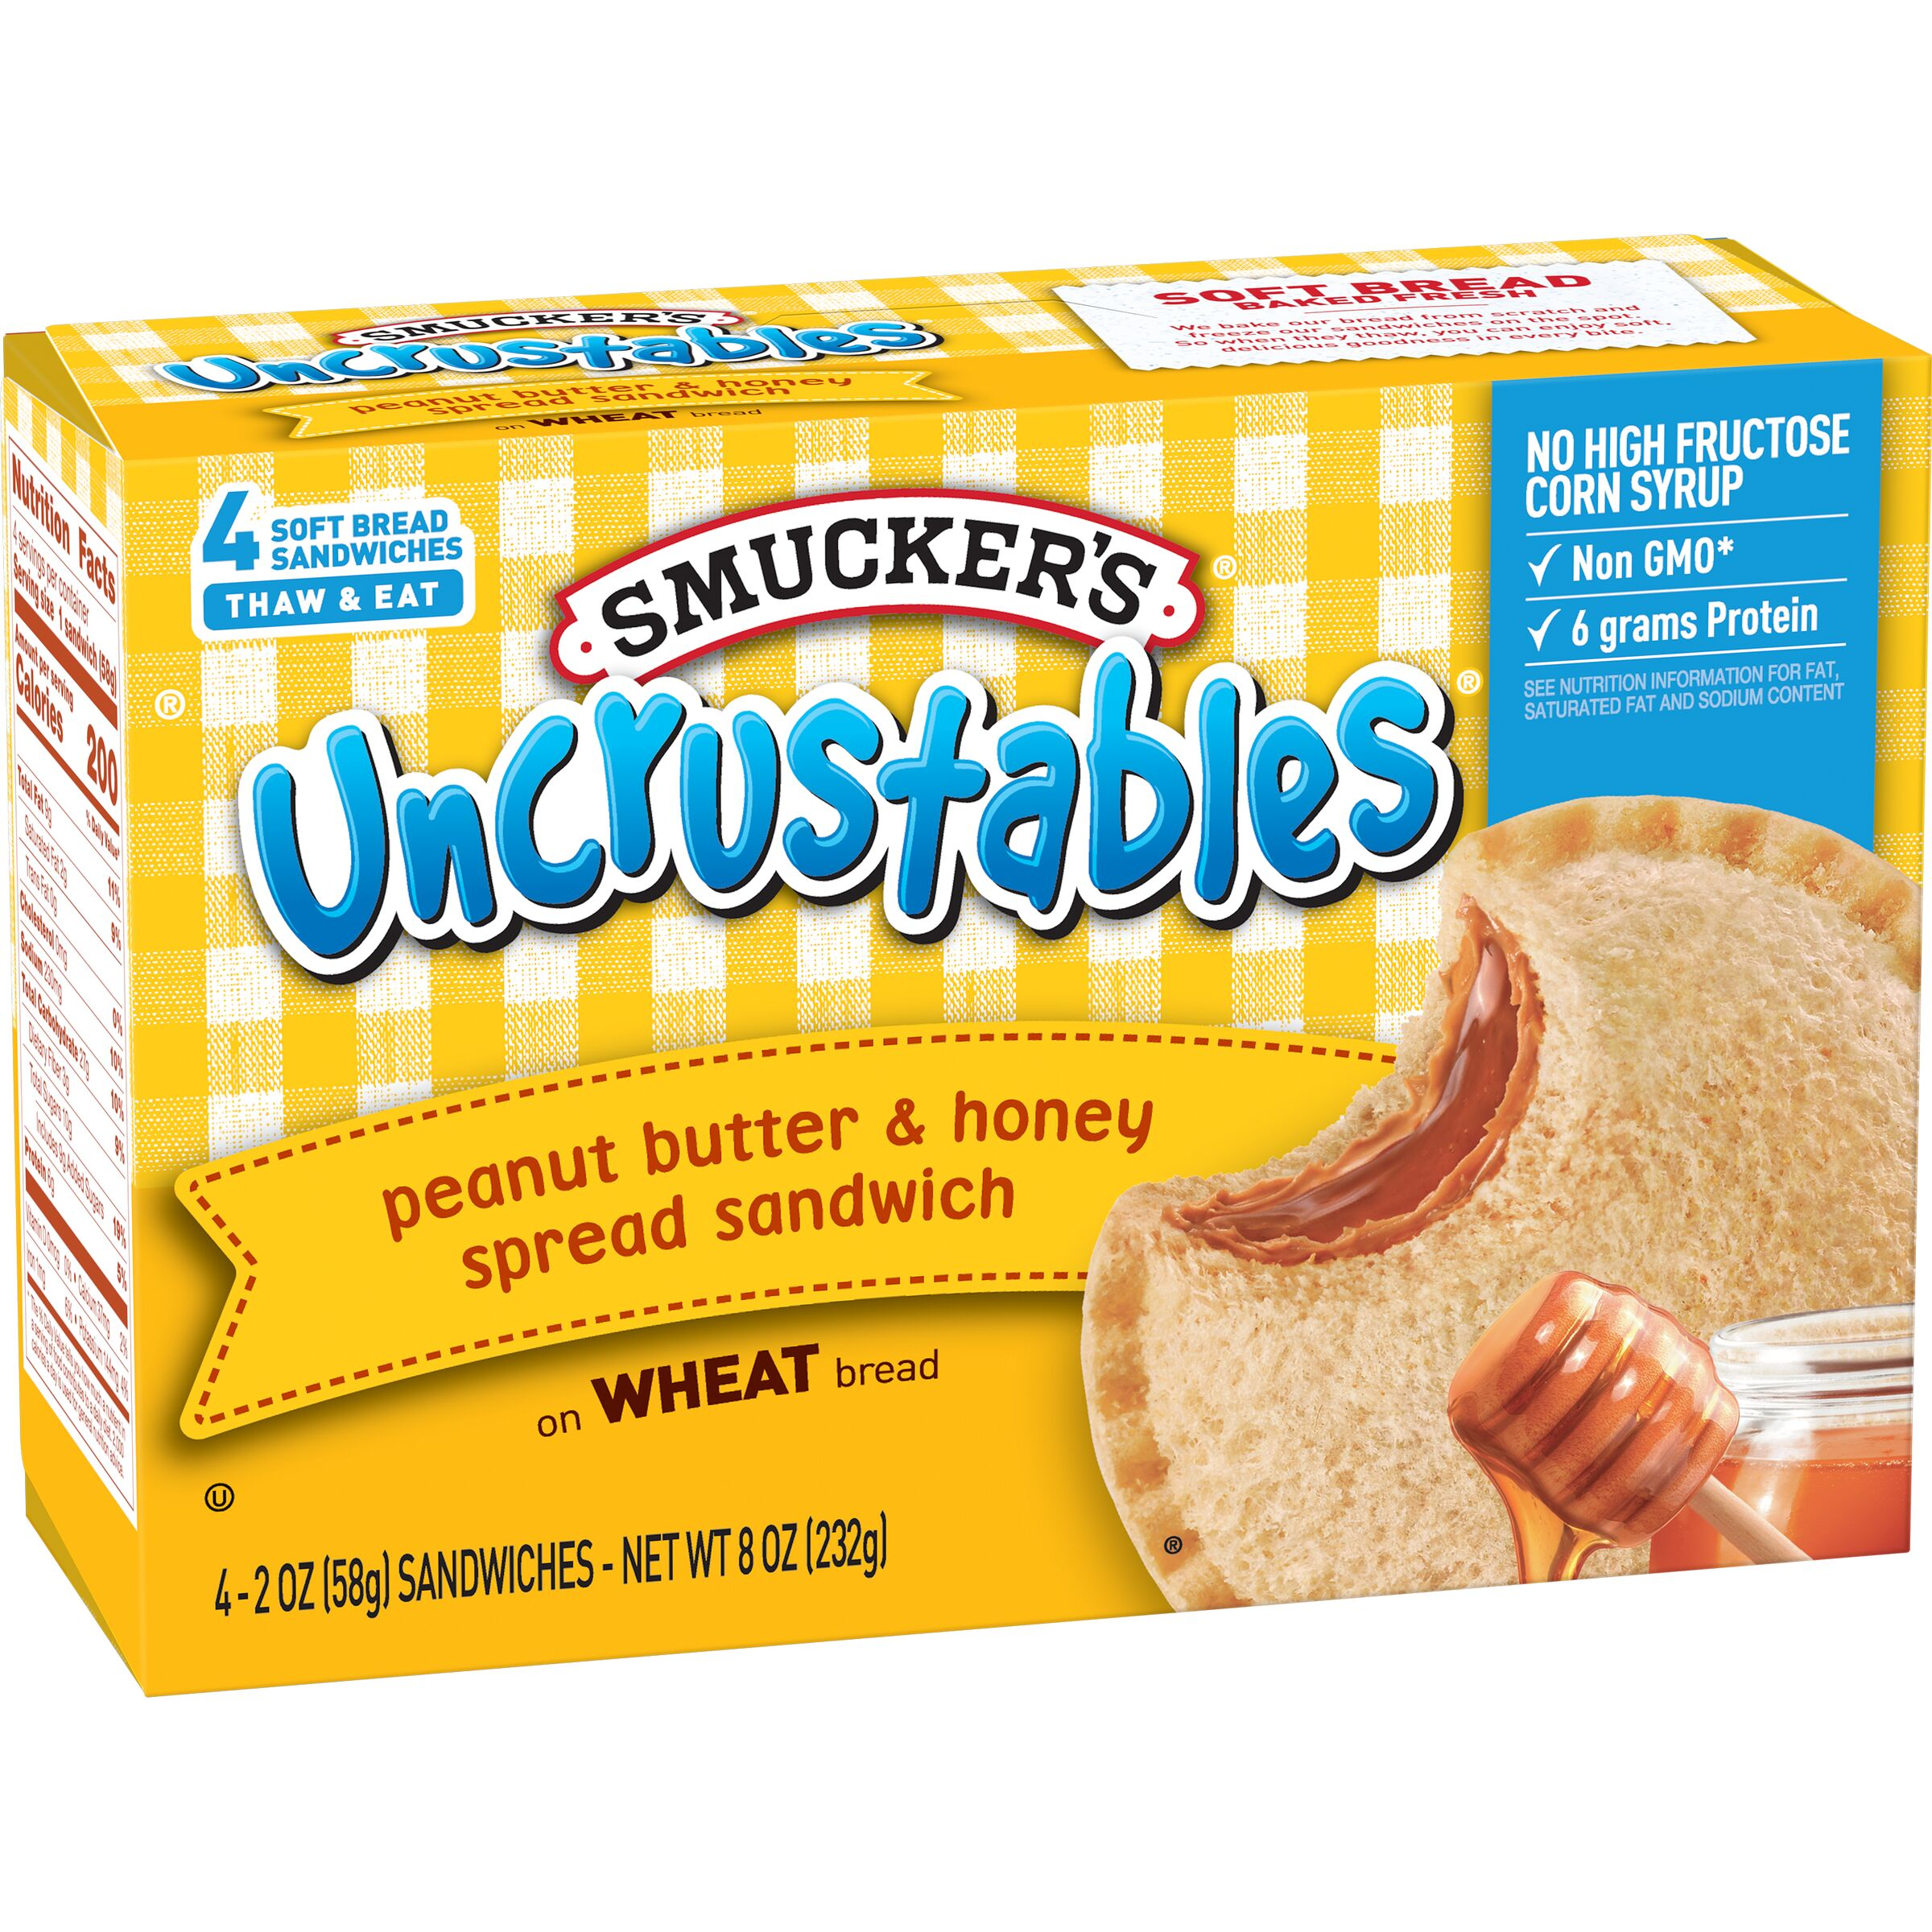 Smucker's Uncrustables Peanut Butter & Honey Spread Sandwich on Whole Wheat